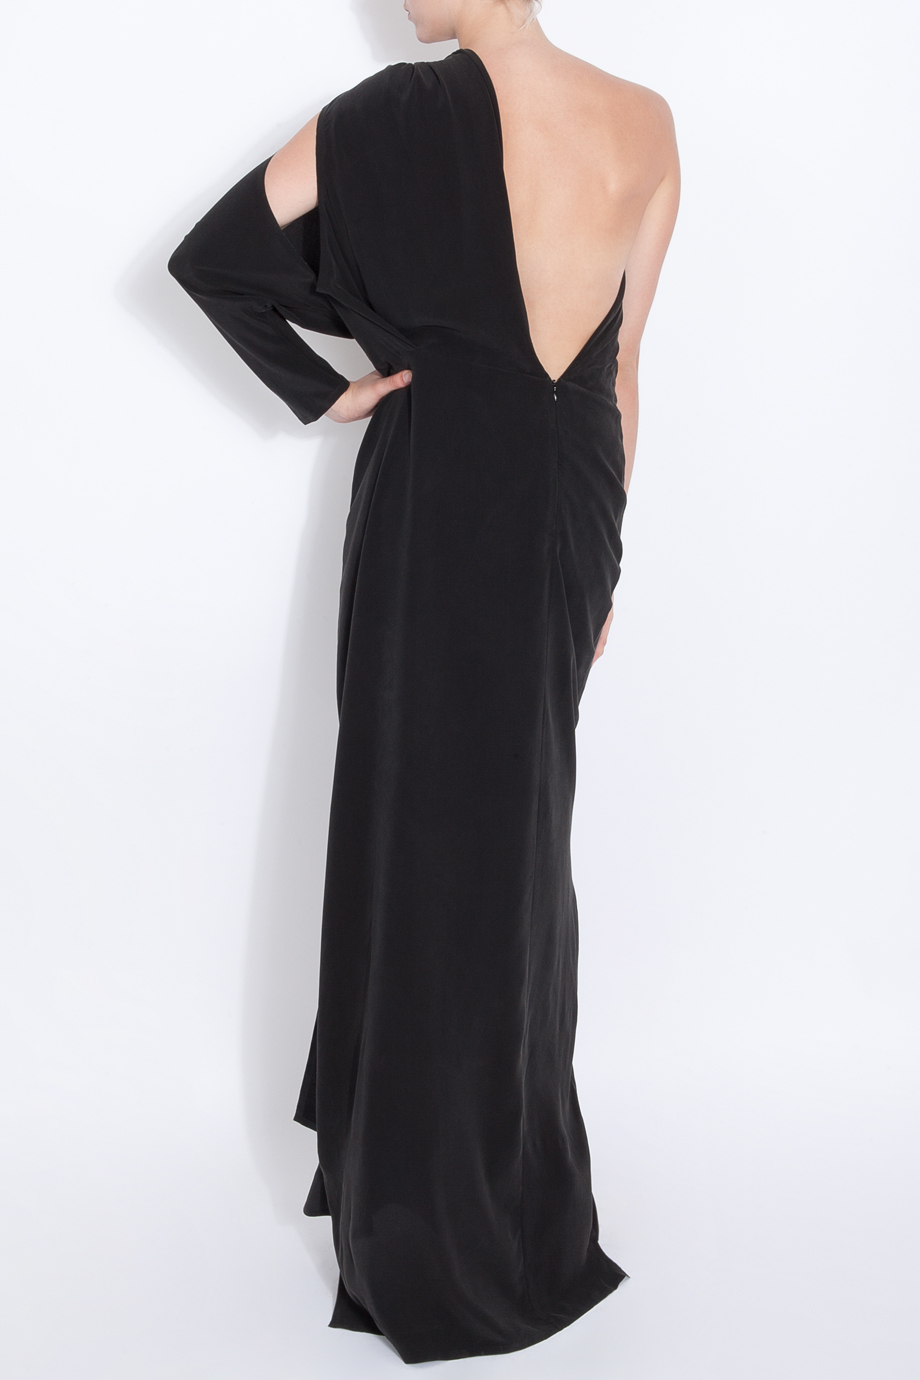 Acne black maxi dress